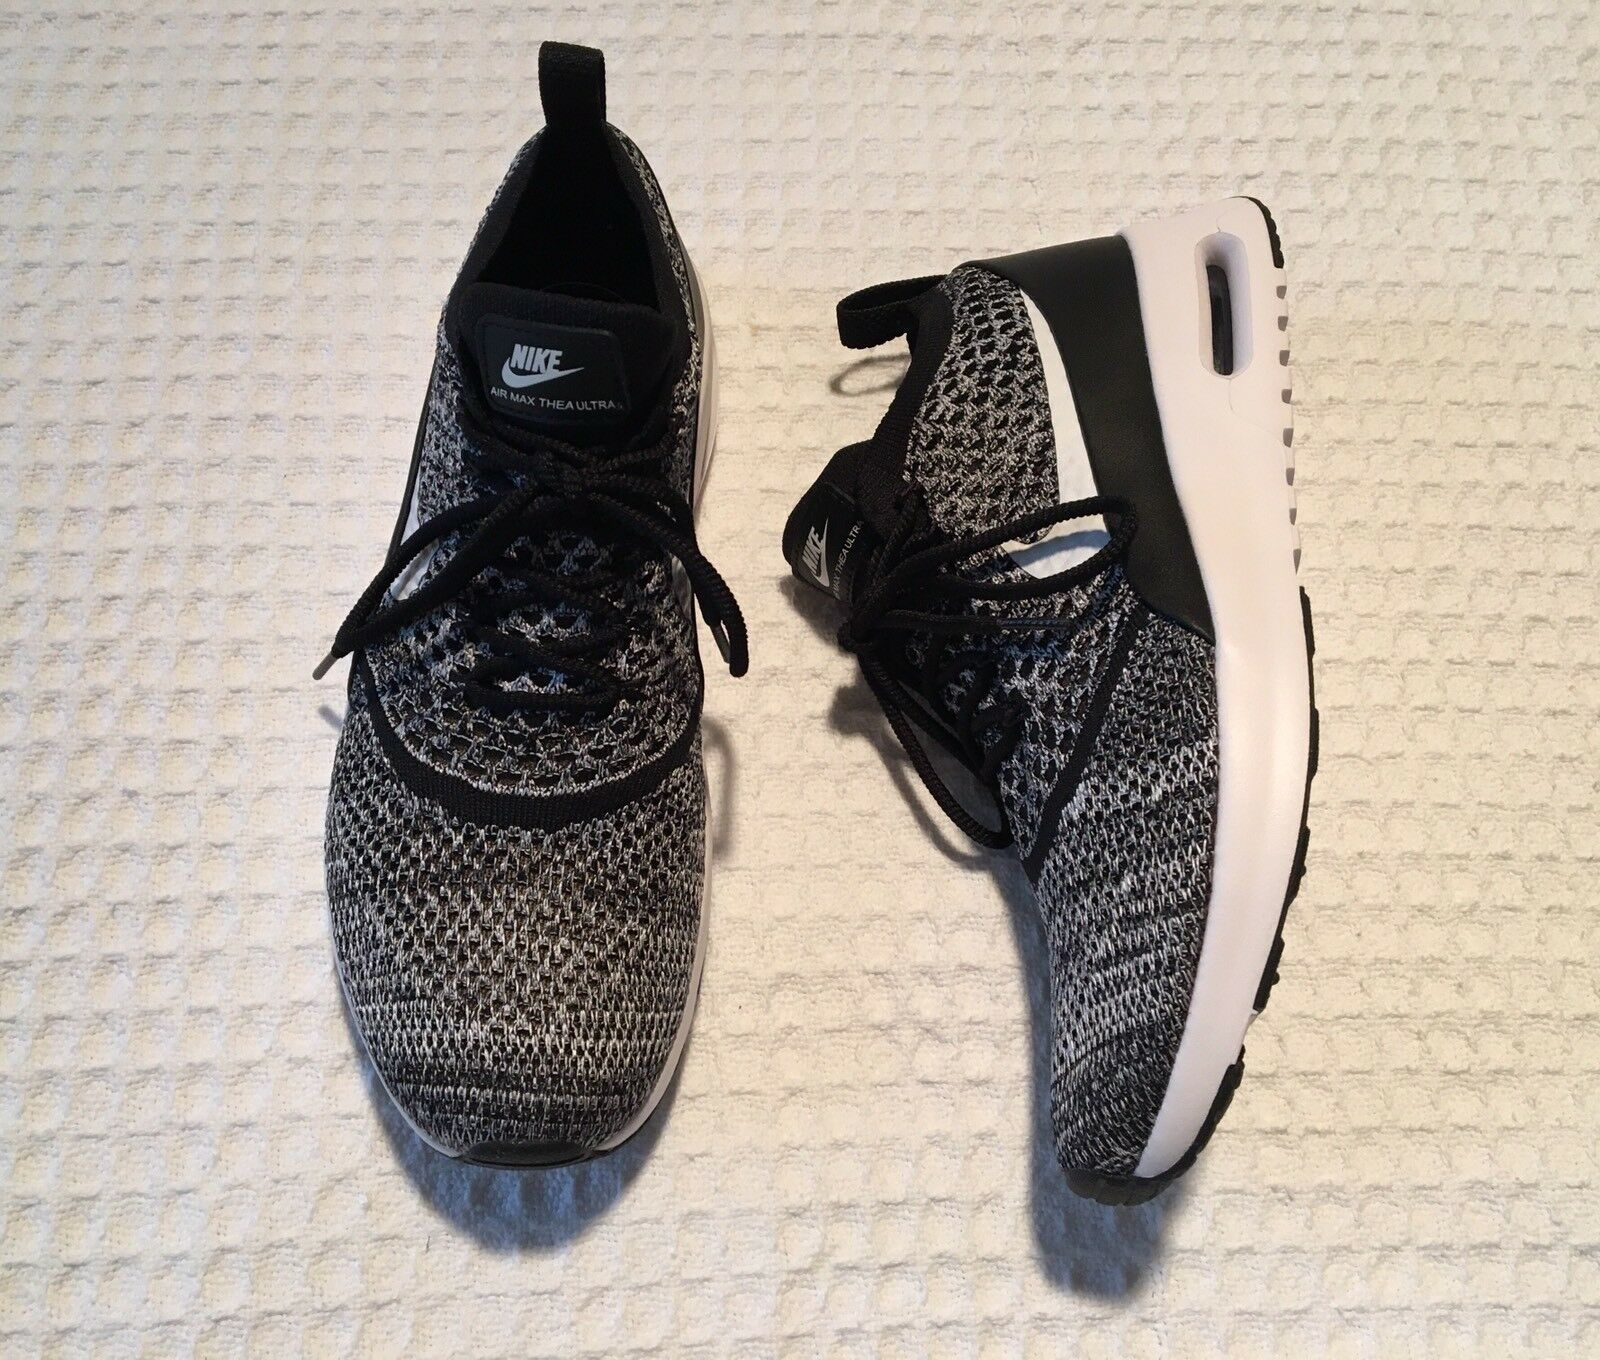 new NIKE Air Max Thea Ultra FK Sneakers Running Shoes Black White 10 ... b1e3f77709c